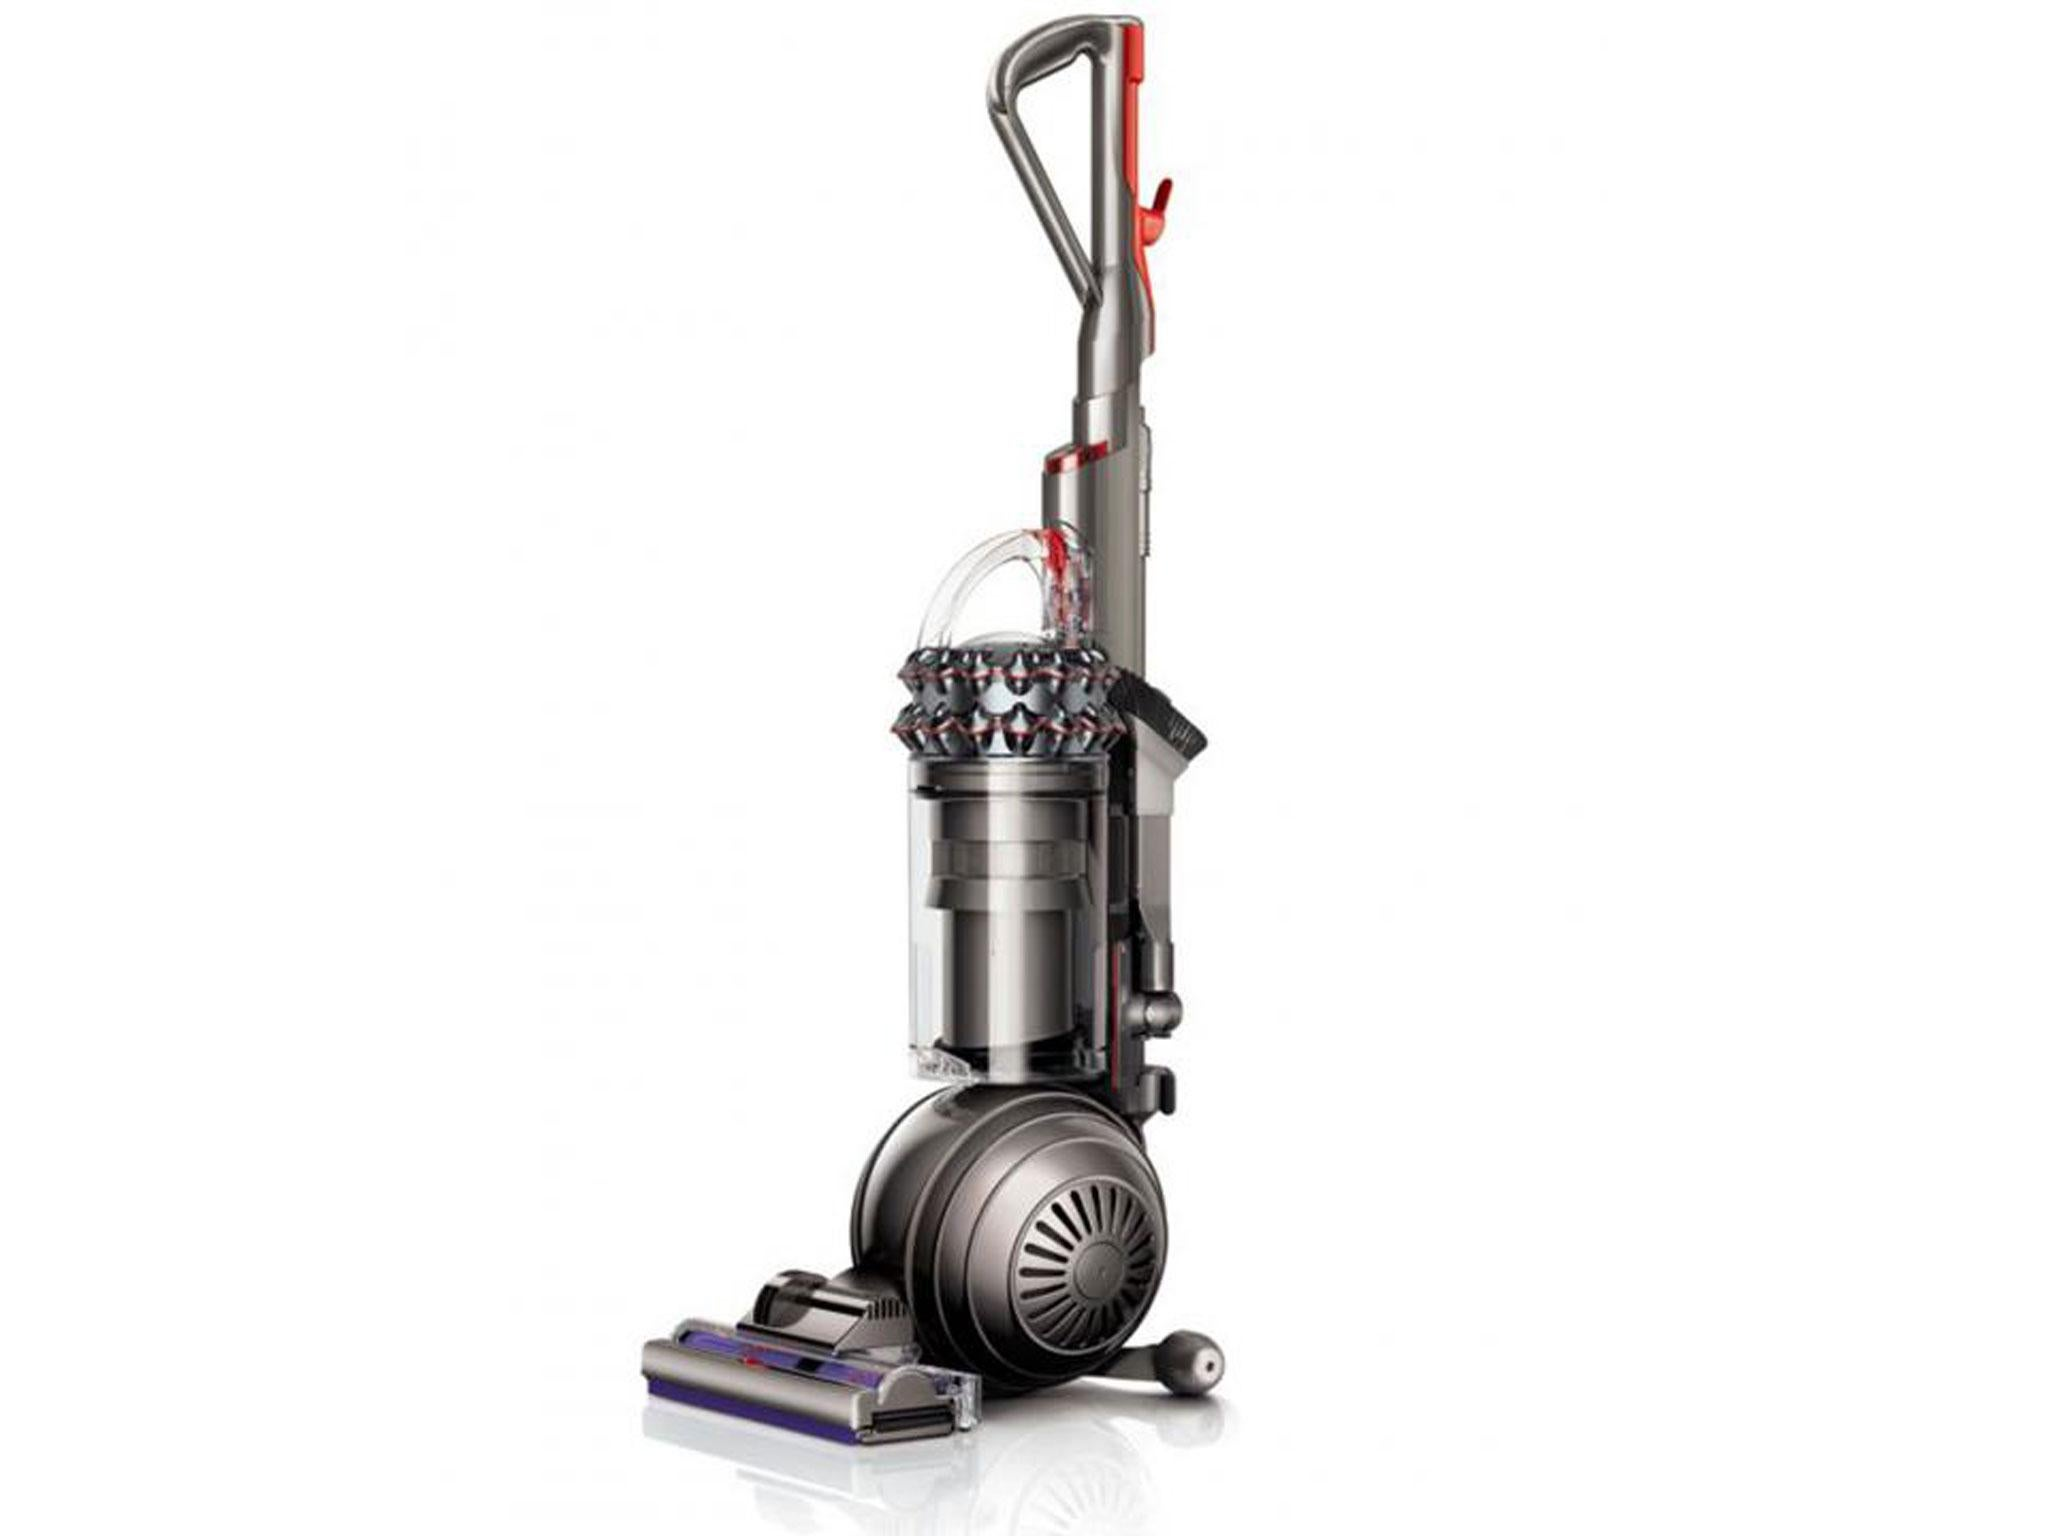 How To Buy The Best Vacuum Cleaner For Your Home The Independent